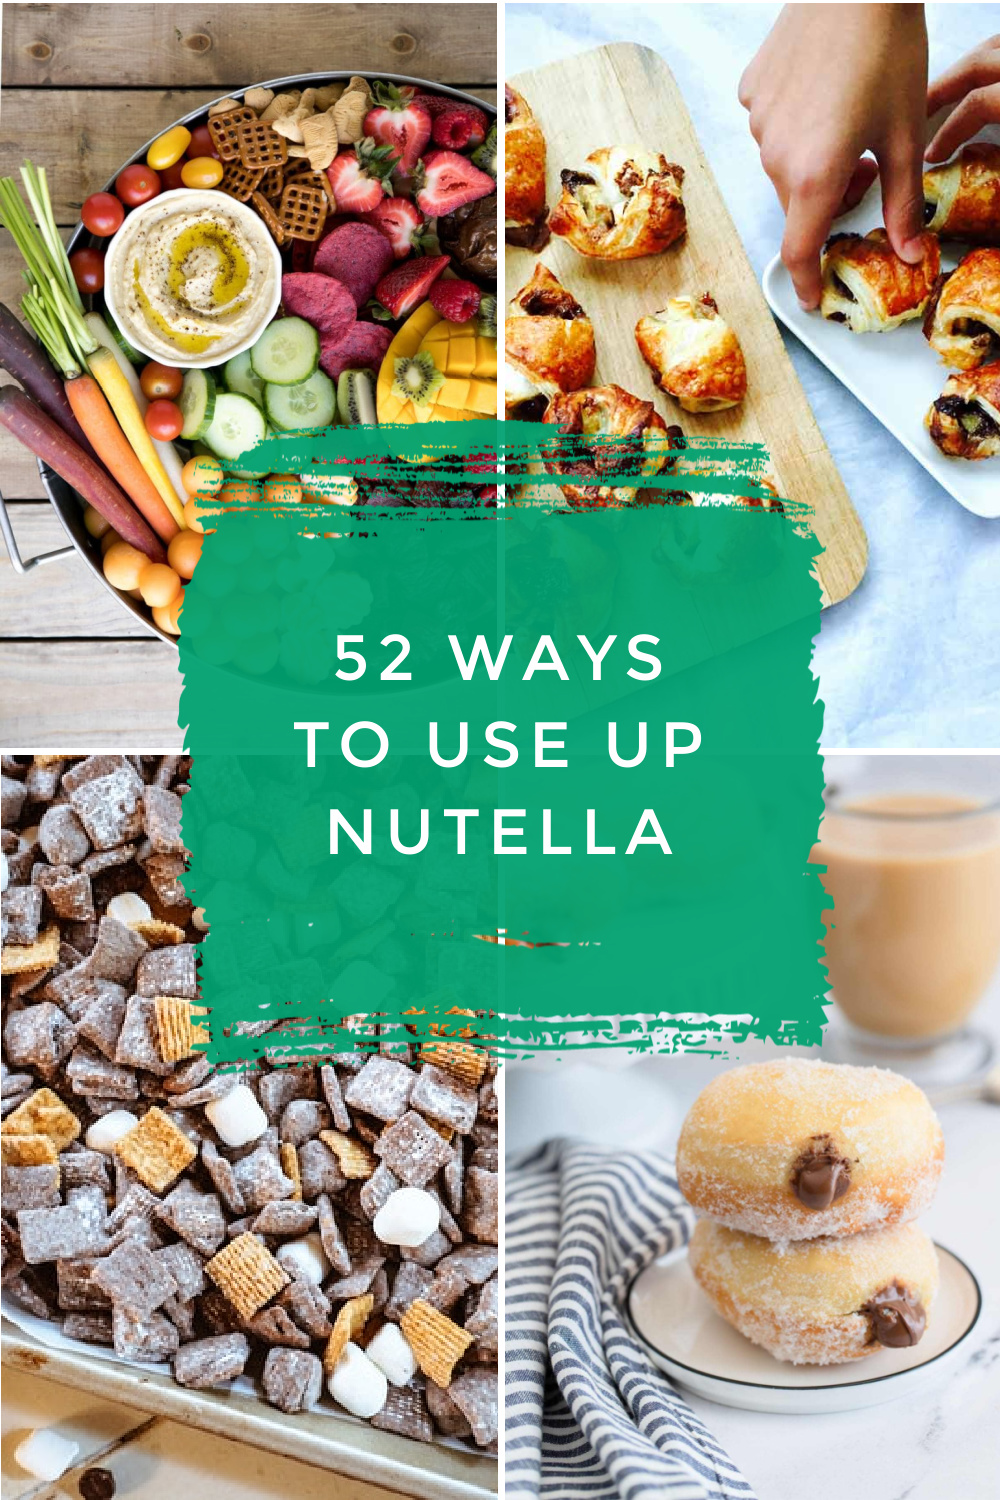 """Images of dishes made with Nutella (chocolate hazelnut spread). Text reads """"52 ways to use up Nutella"""""""